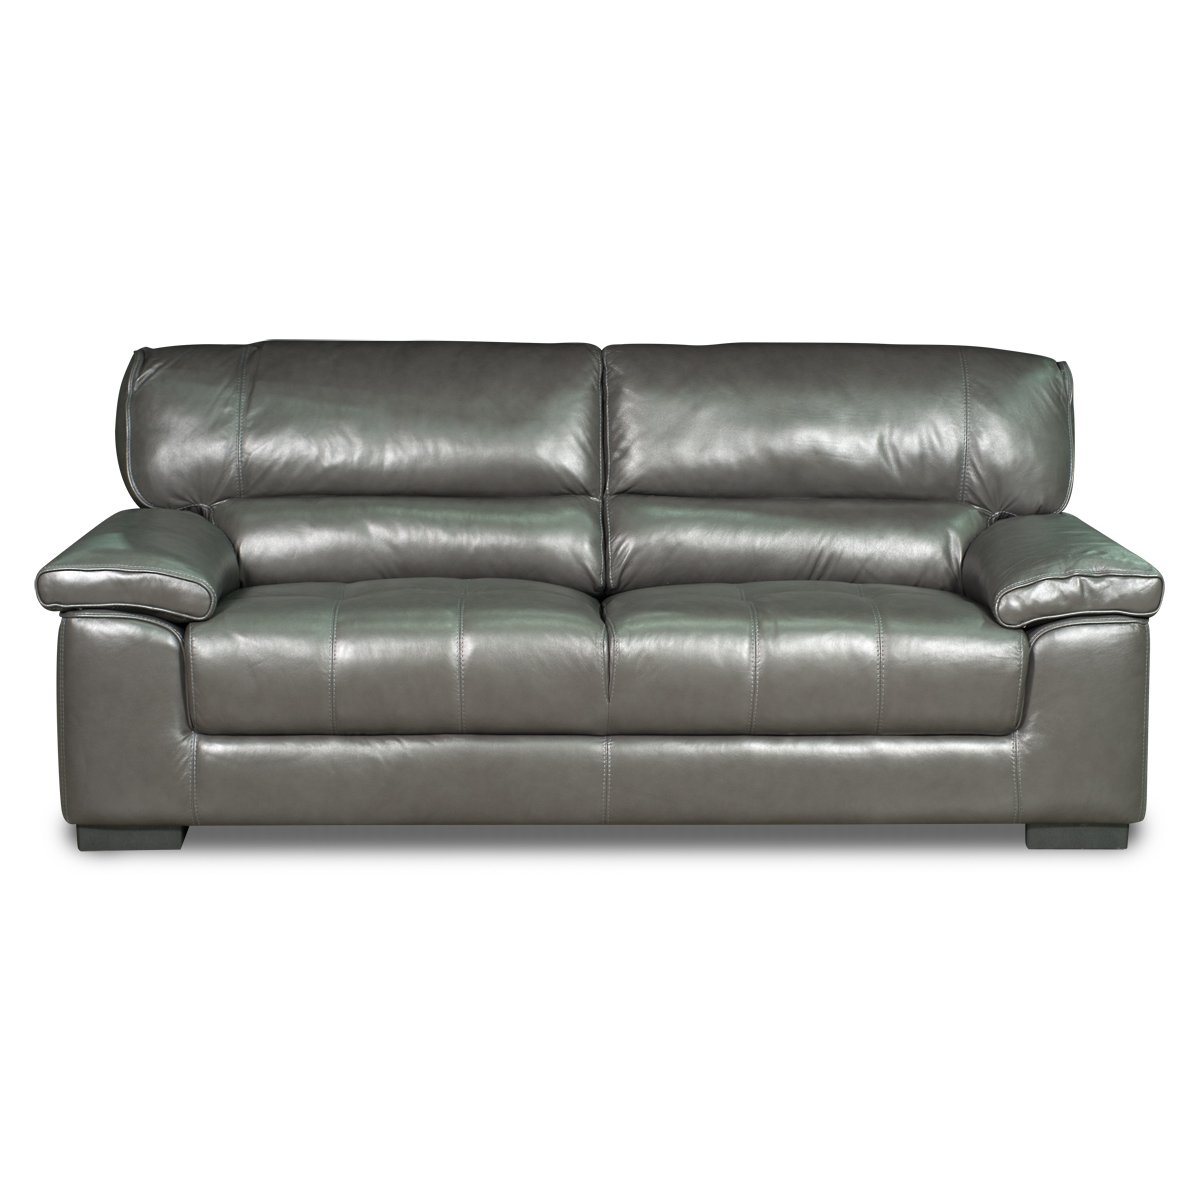 Milan 89 Grey Leather Sofa